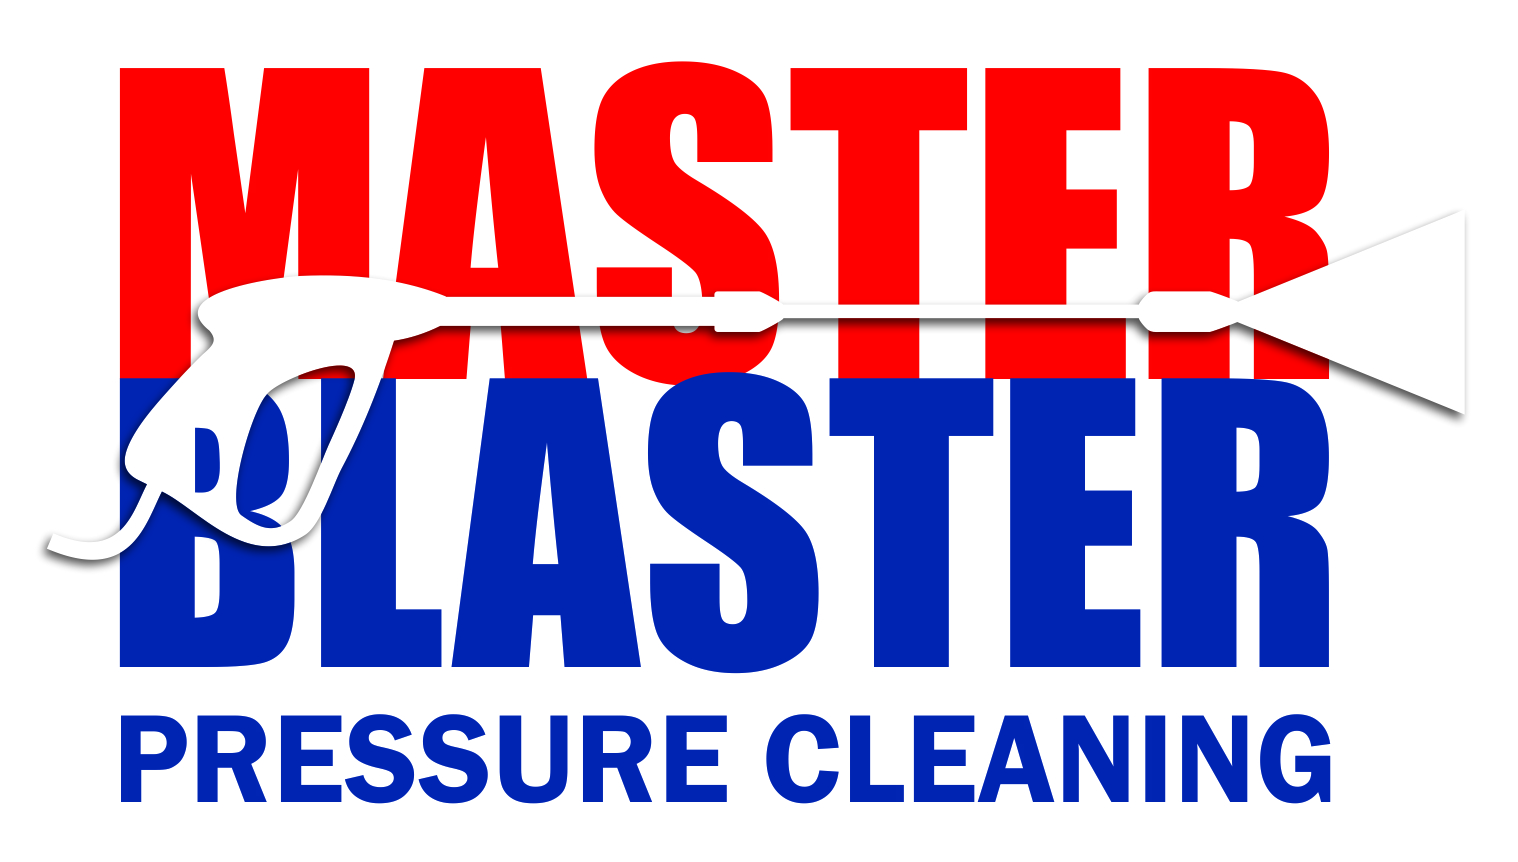 Master Blaster Pressure Cleaning